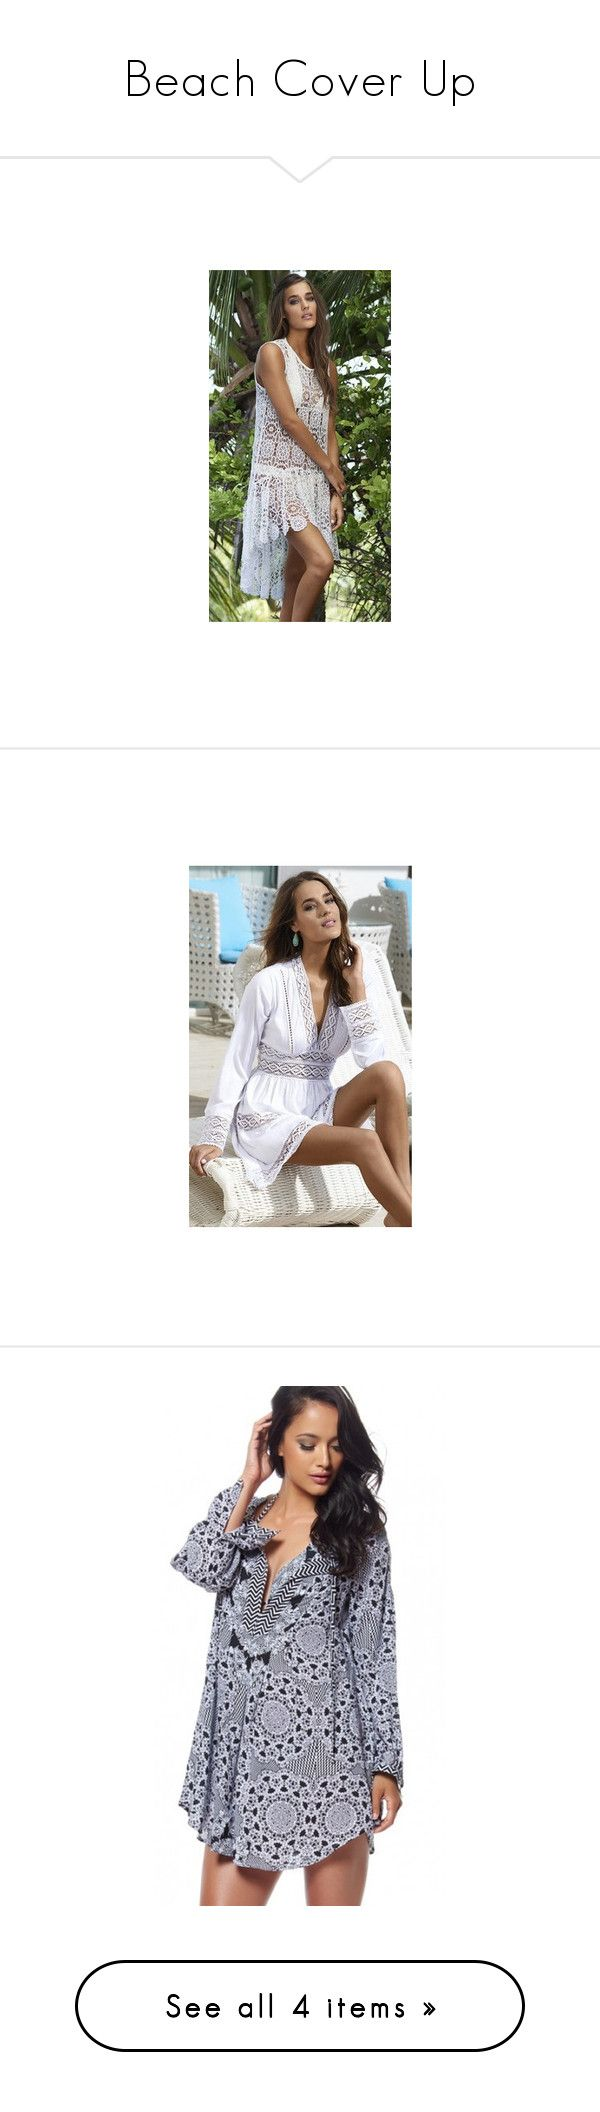 """""""Beach Cover Up"""" by michelle-251 on Polyvore featuring dresses, lacy dress, pilyq, lace dress, tops, boho tops, boho shirts, bohemian tops, bohemian style tops et boho chic tops"""